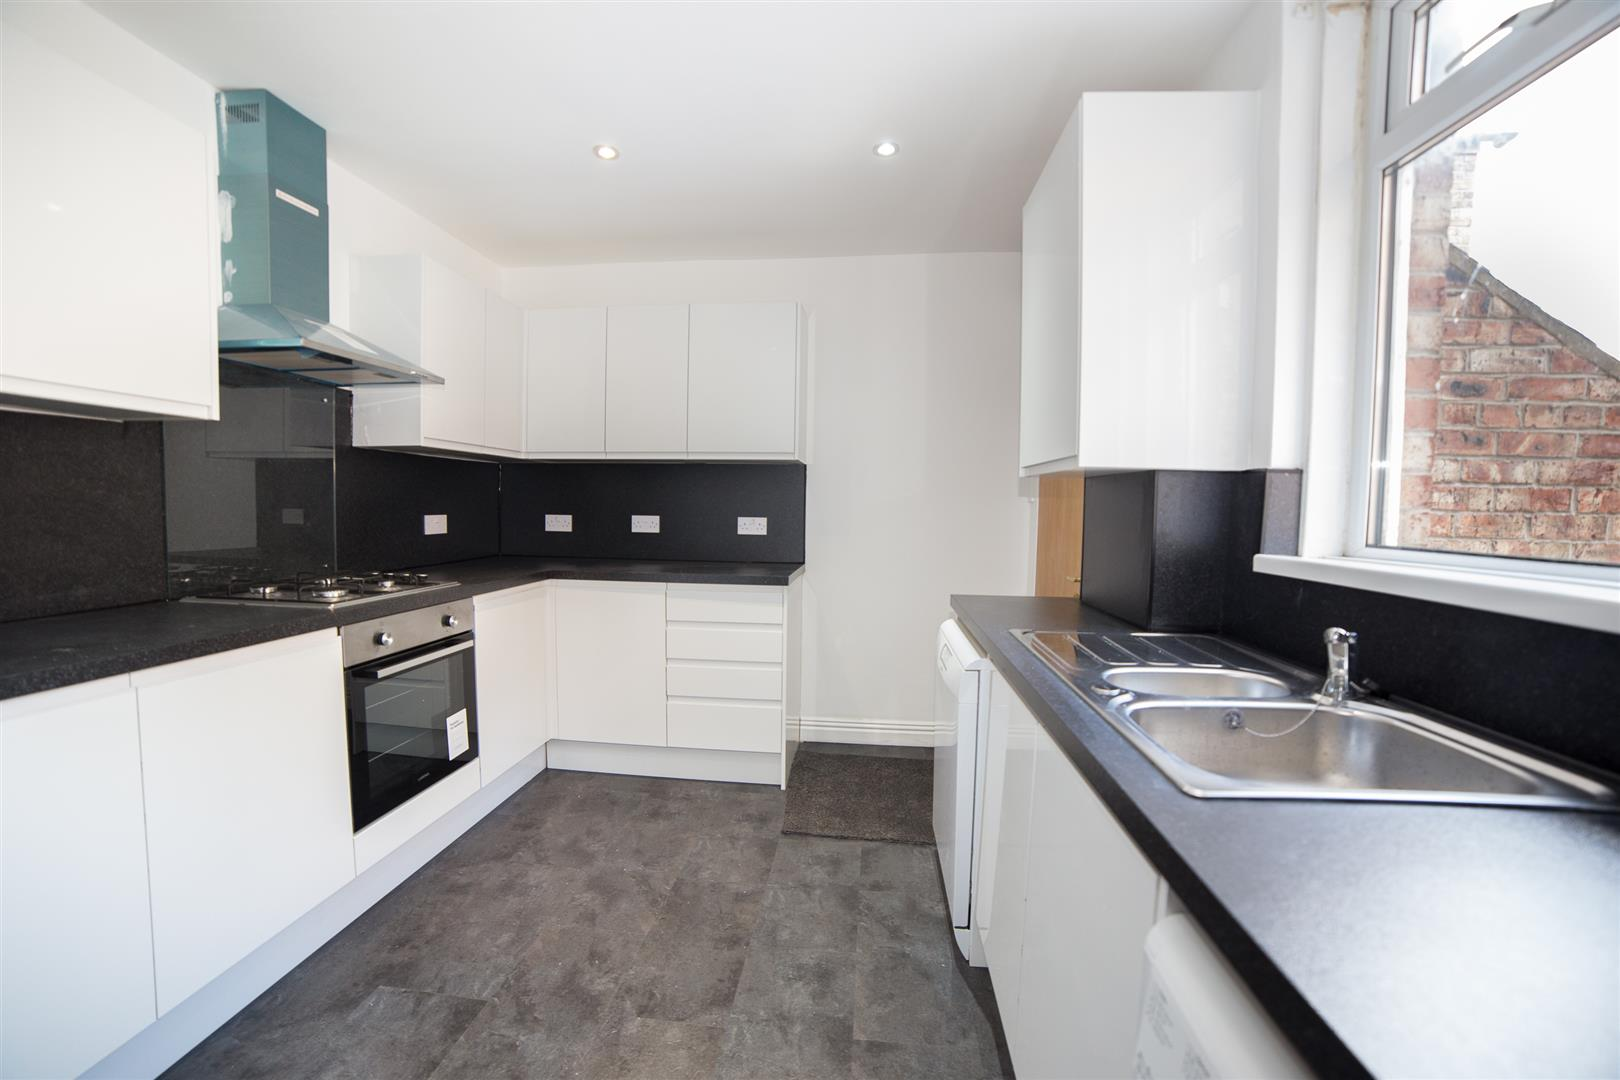 7 bed maisonette to rent in Newcastle Upon Tyne, NE2 1LB  - Property Image 5